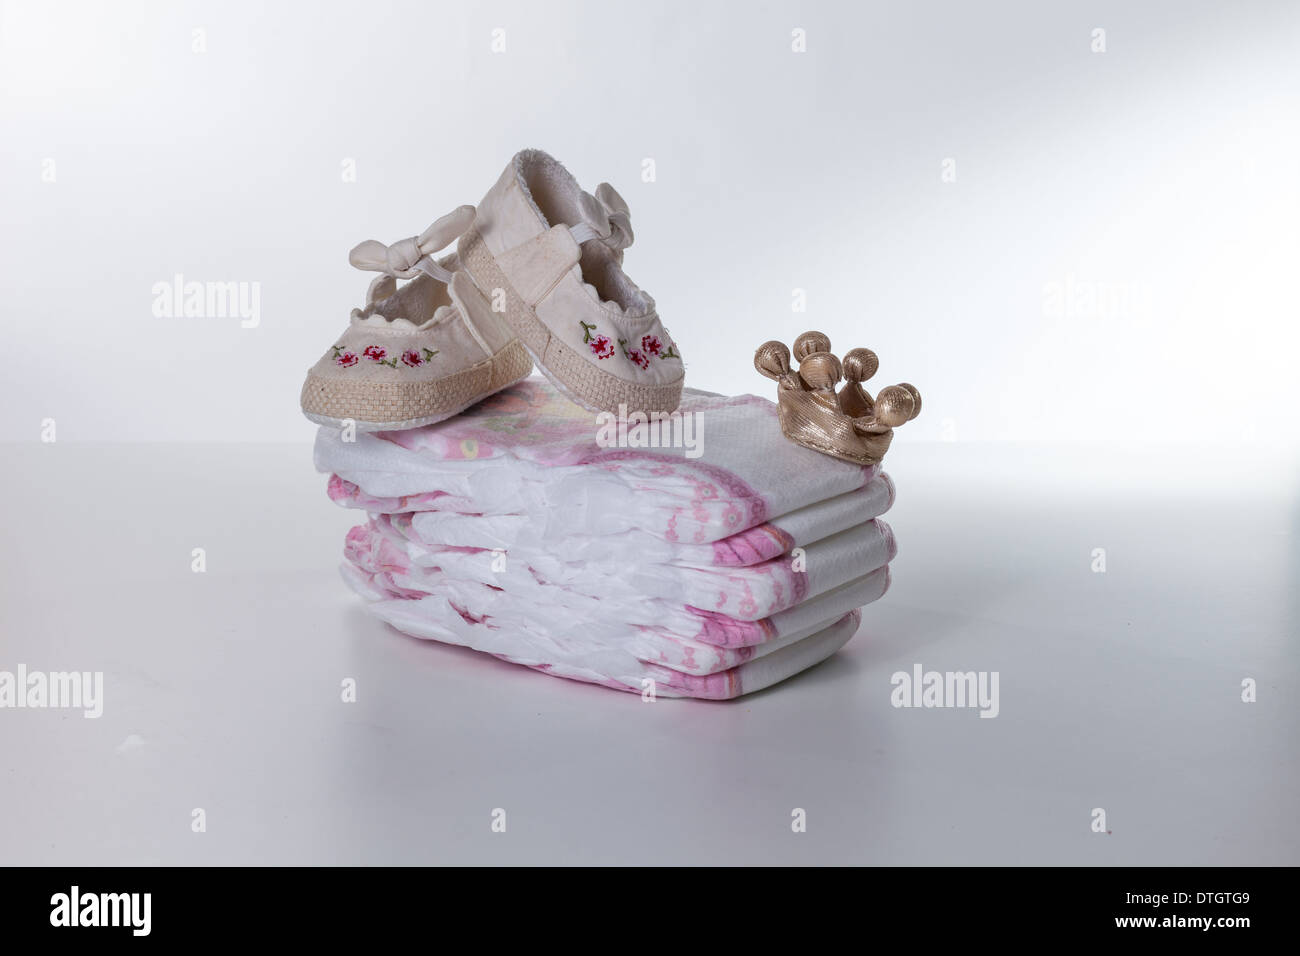 baby shoes, baby shoes baby, ballet, bear, birth, birthday, booties, born, boy, card, crown, diapers, dream, england, family - Stock Image